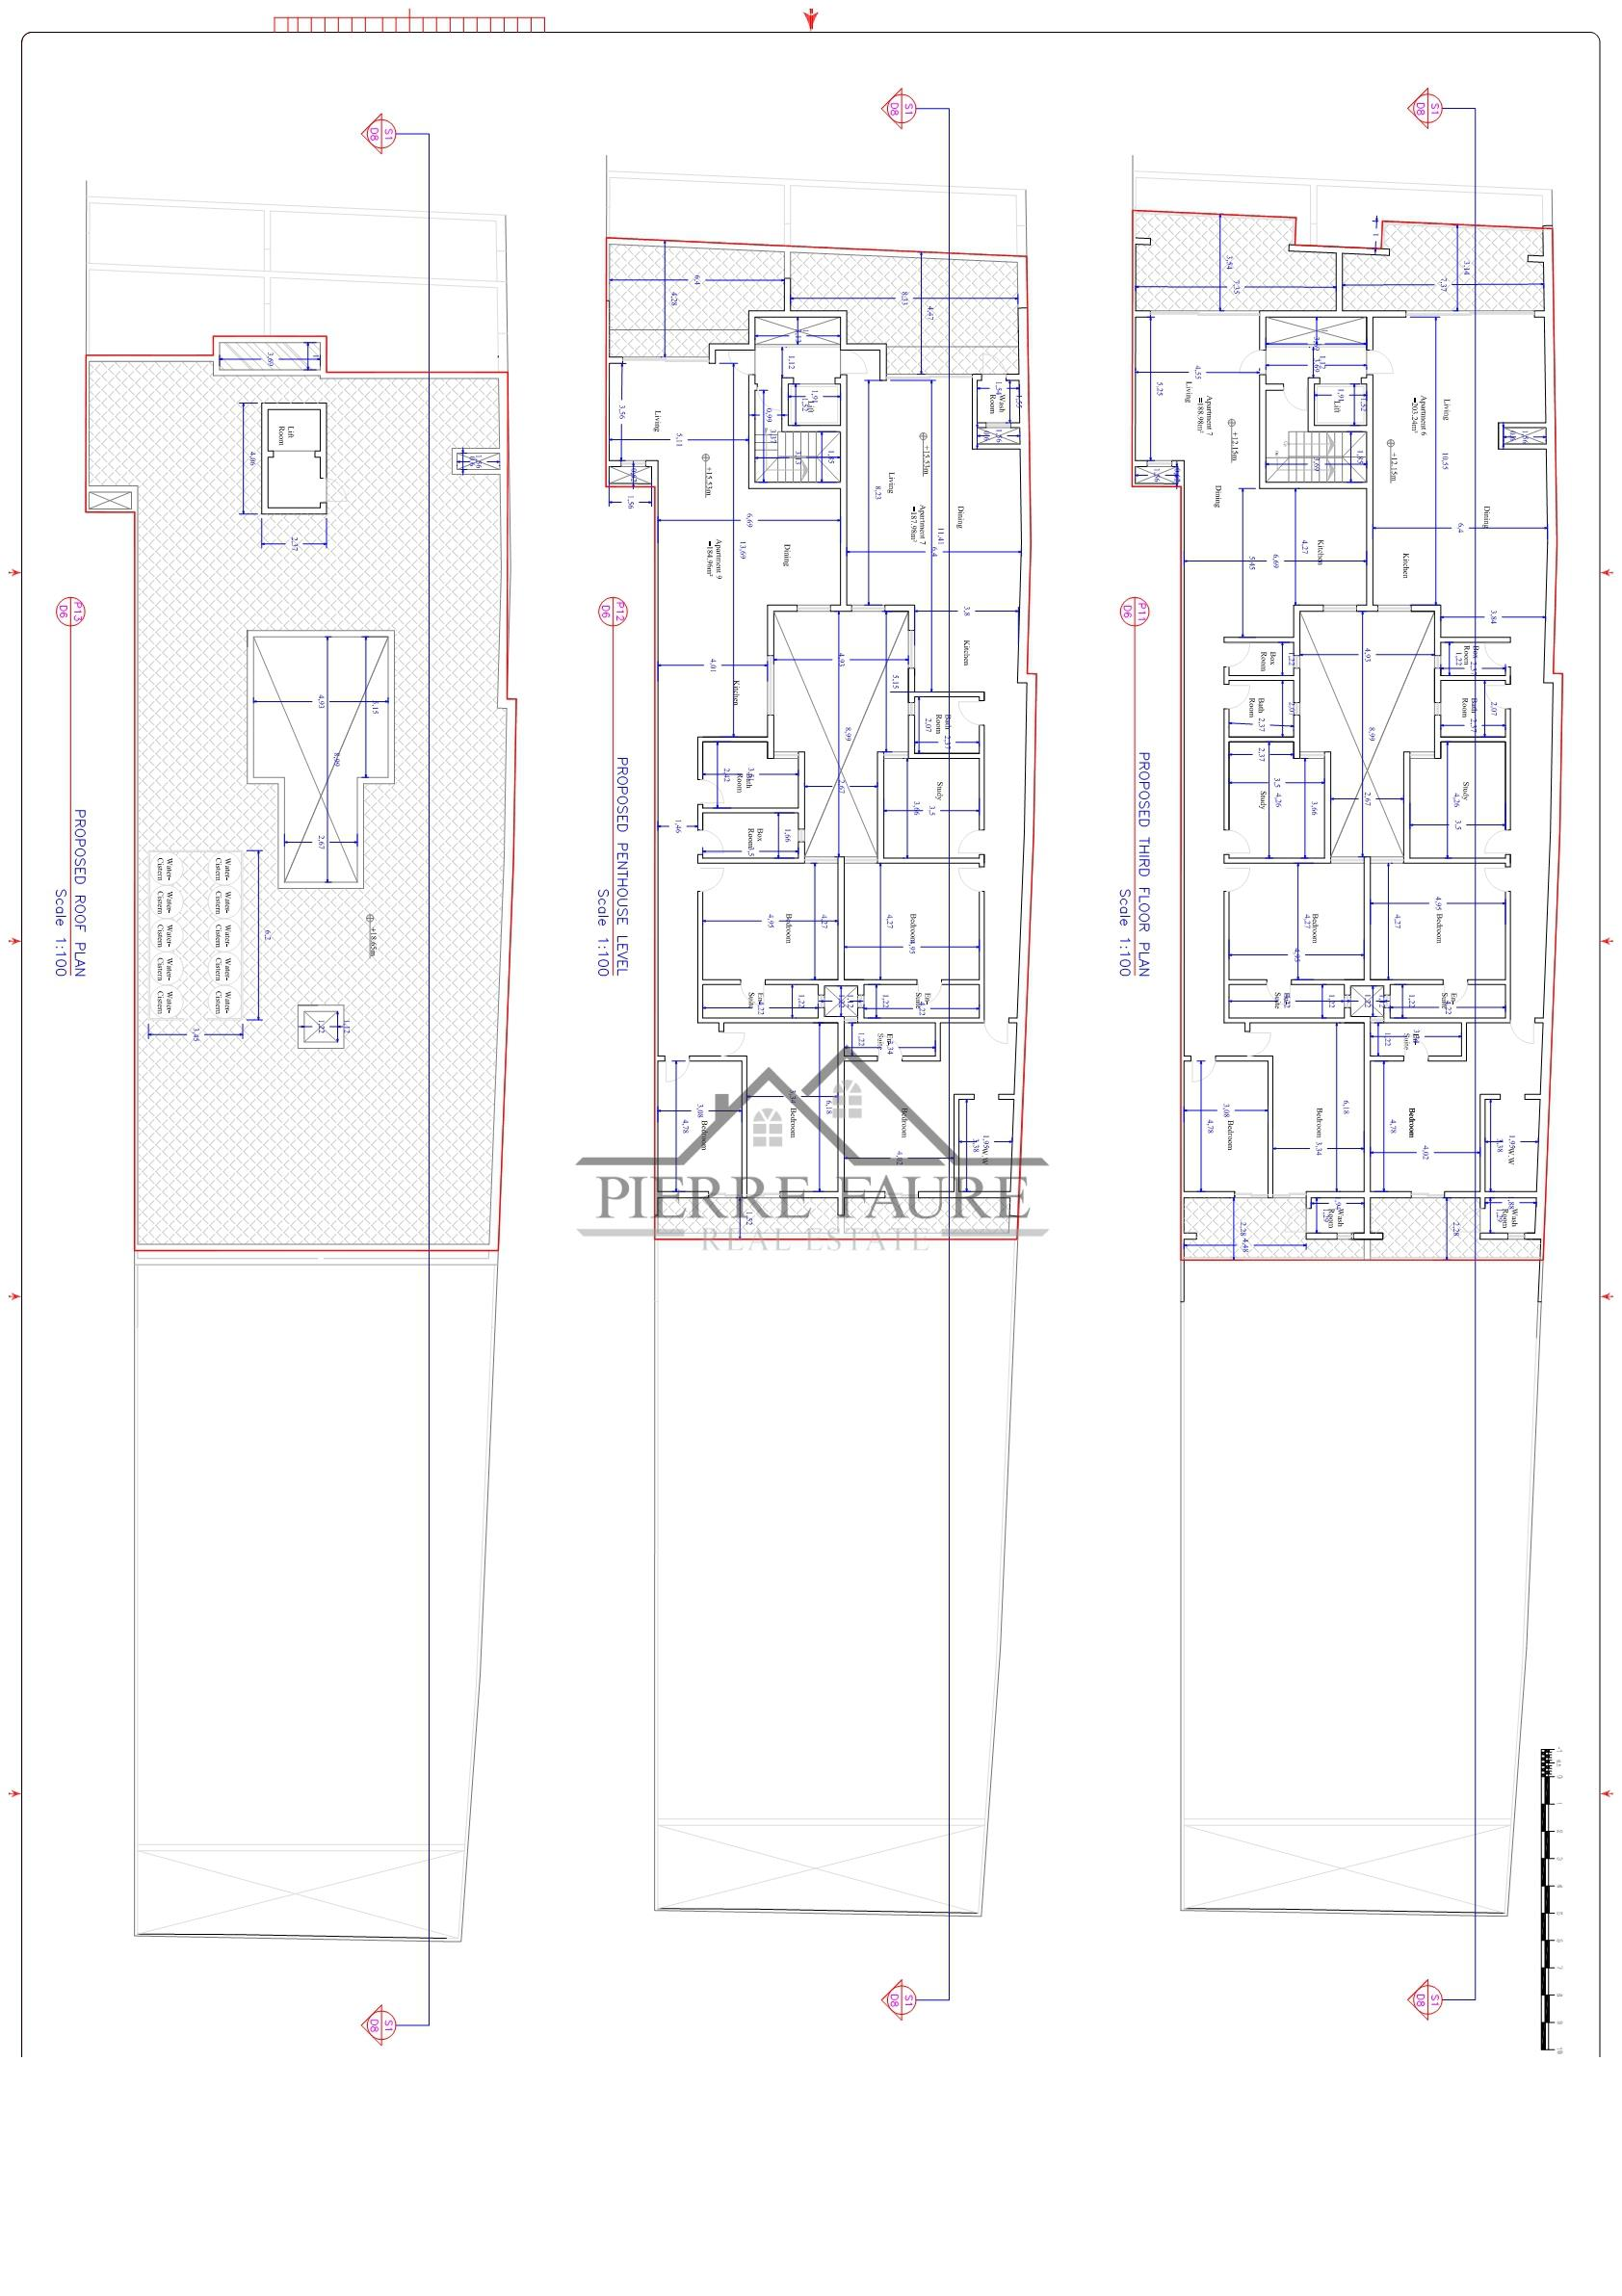 PROPOSED PLANS_001